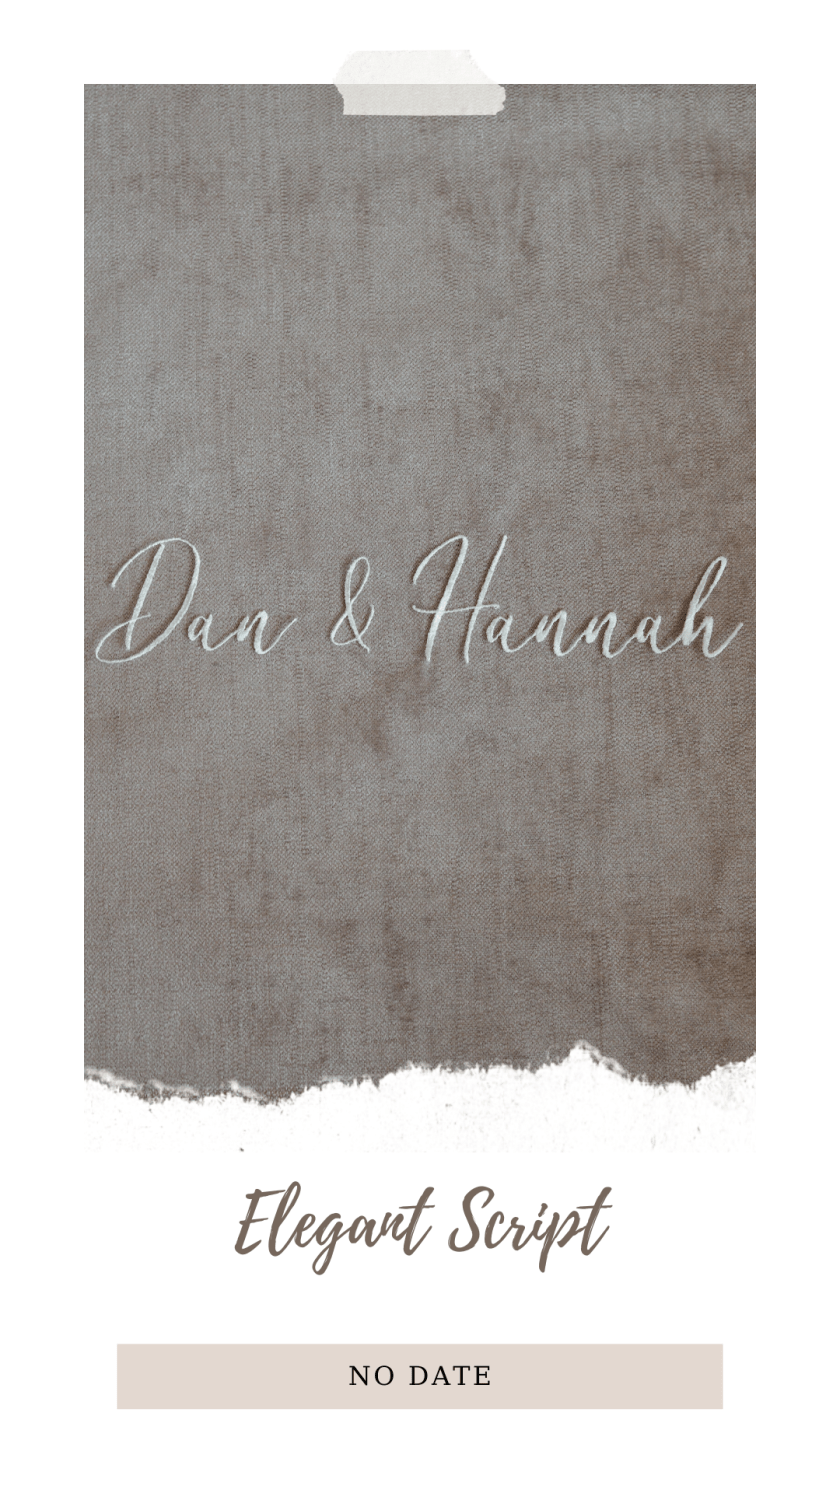 Personalised veil embroidery - names text - elegant script font no date